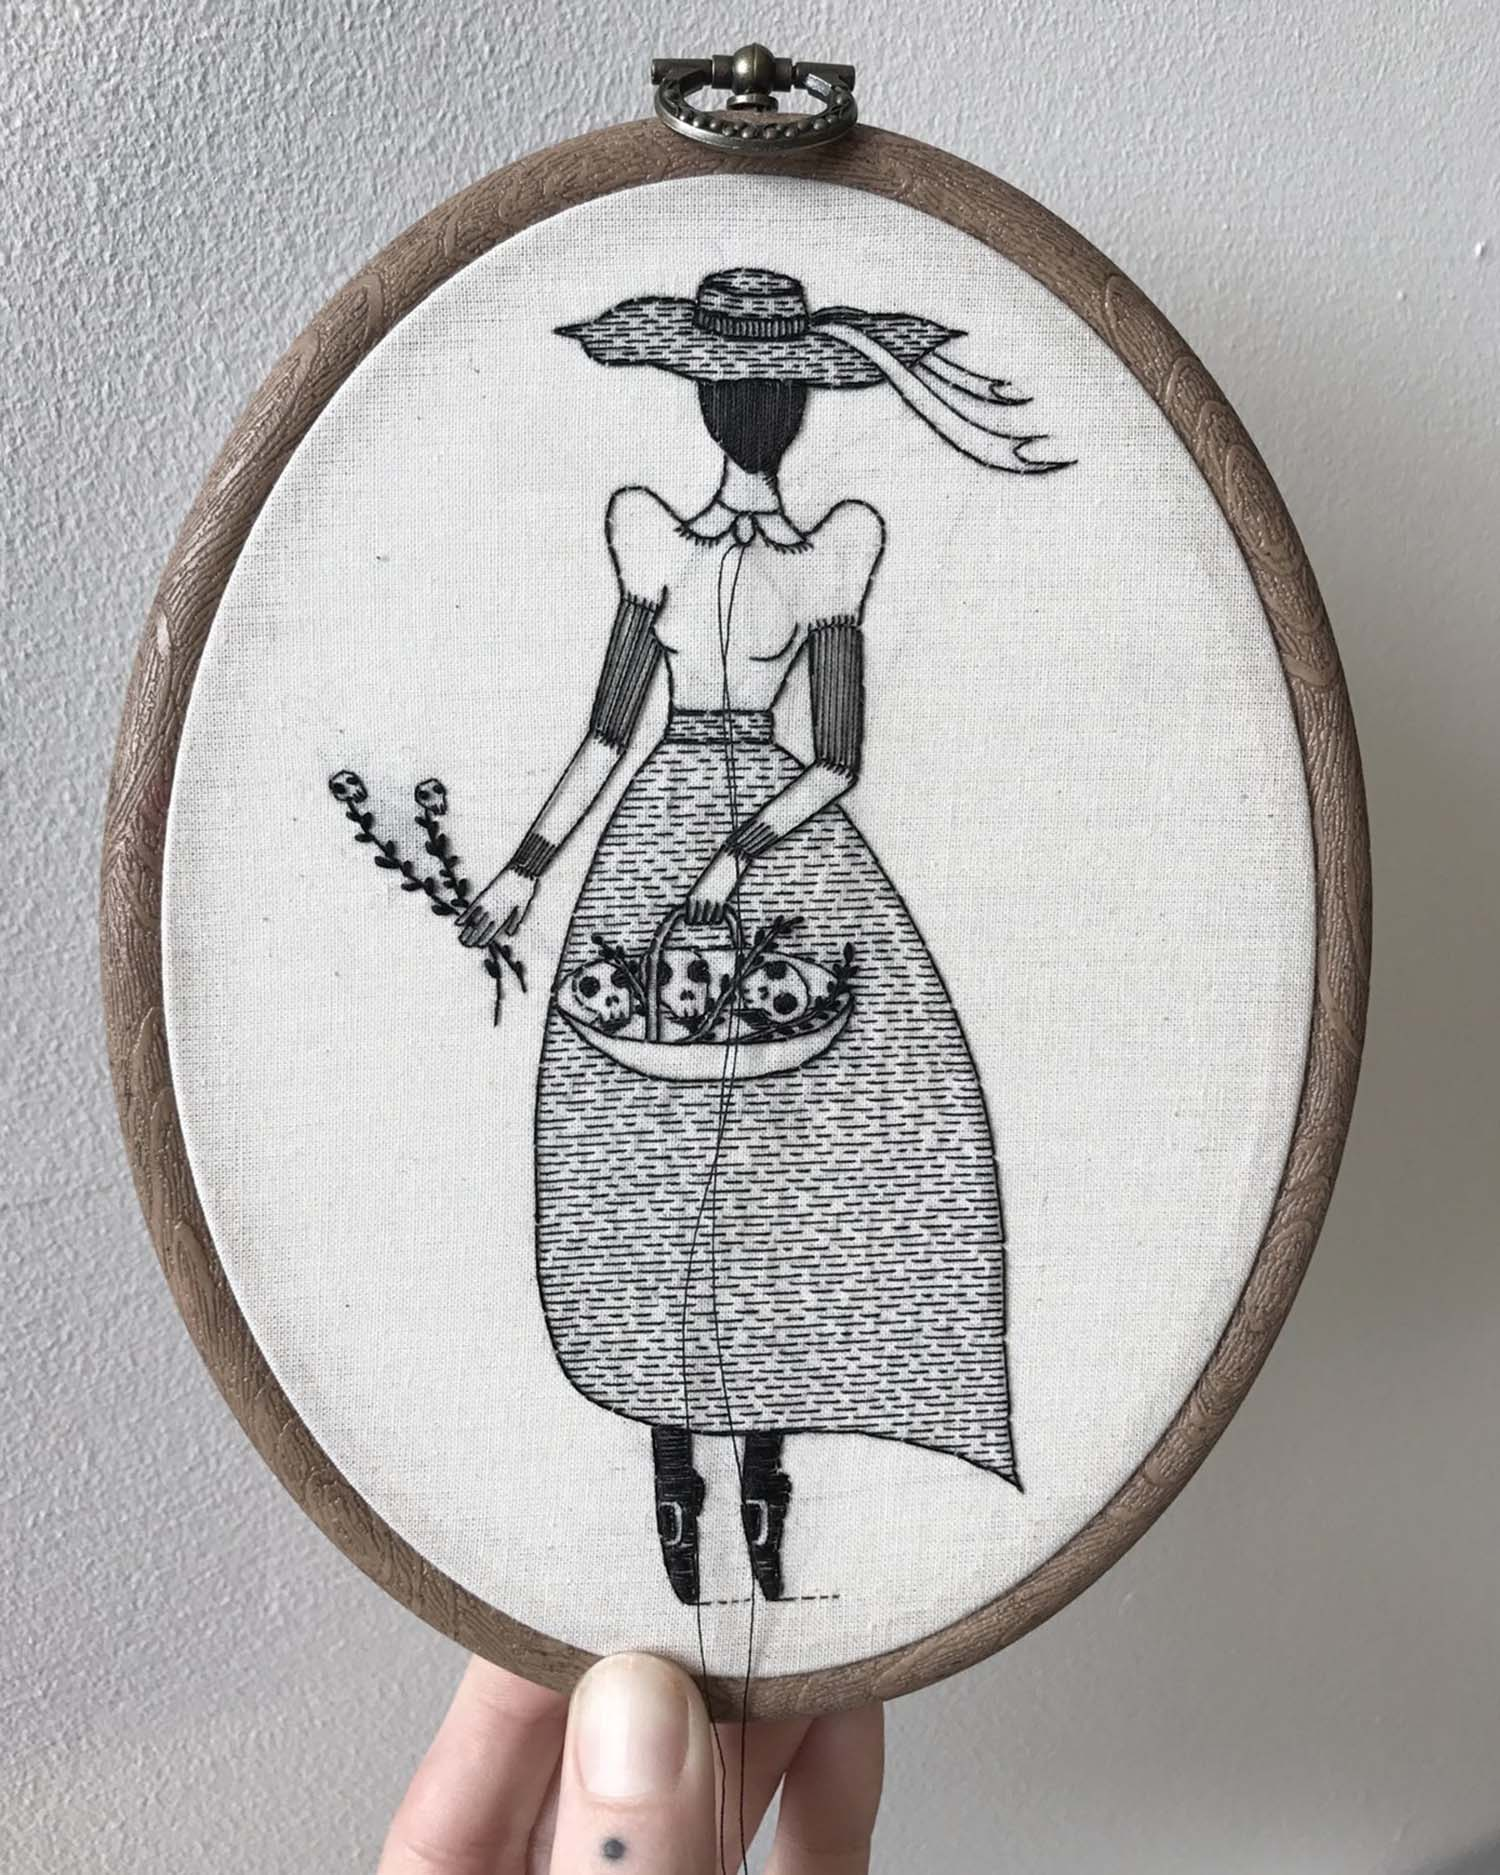 Embroidery of a faceless woman